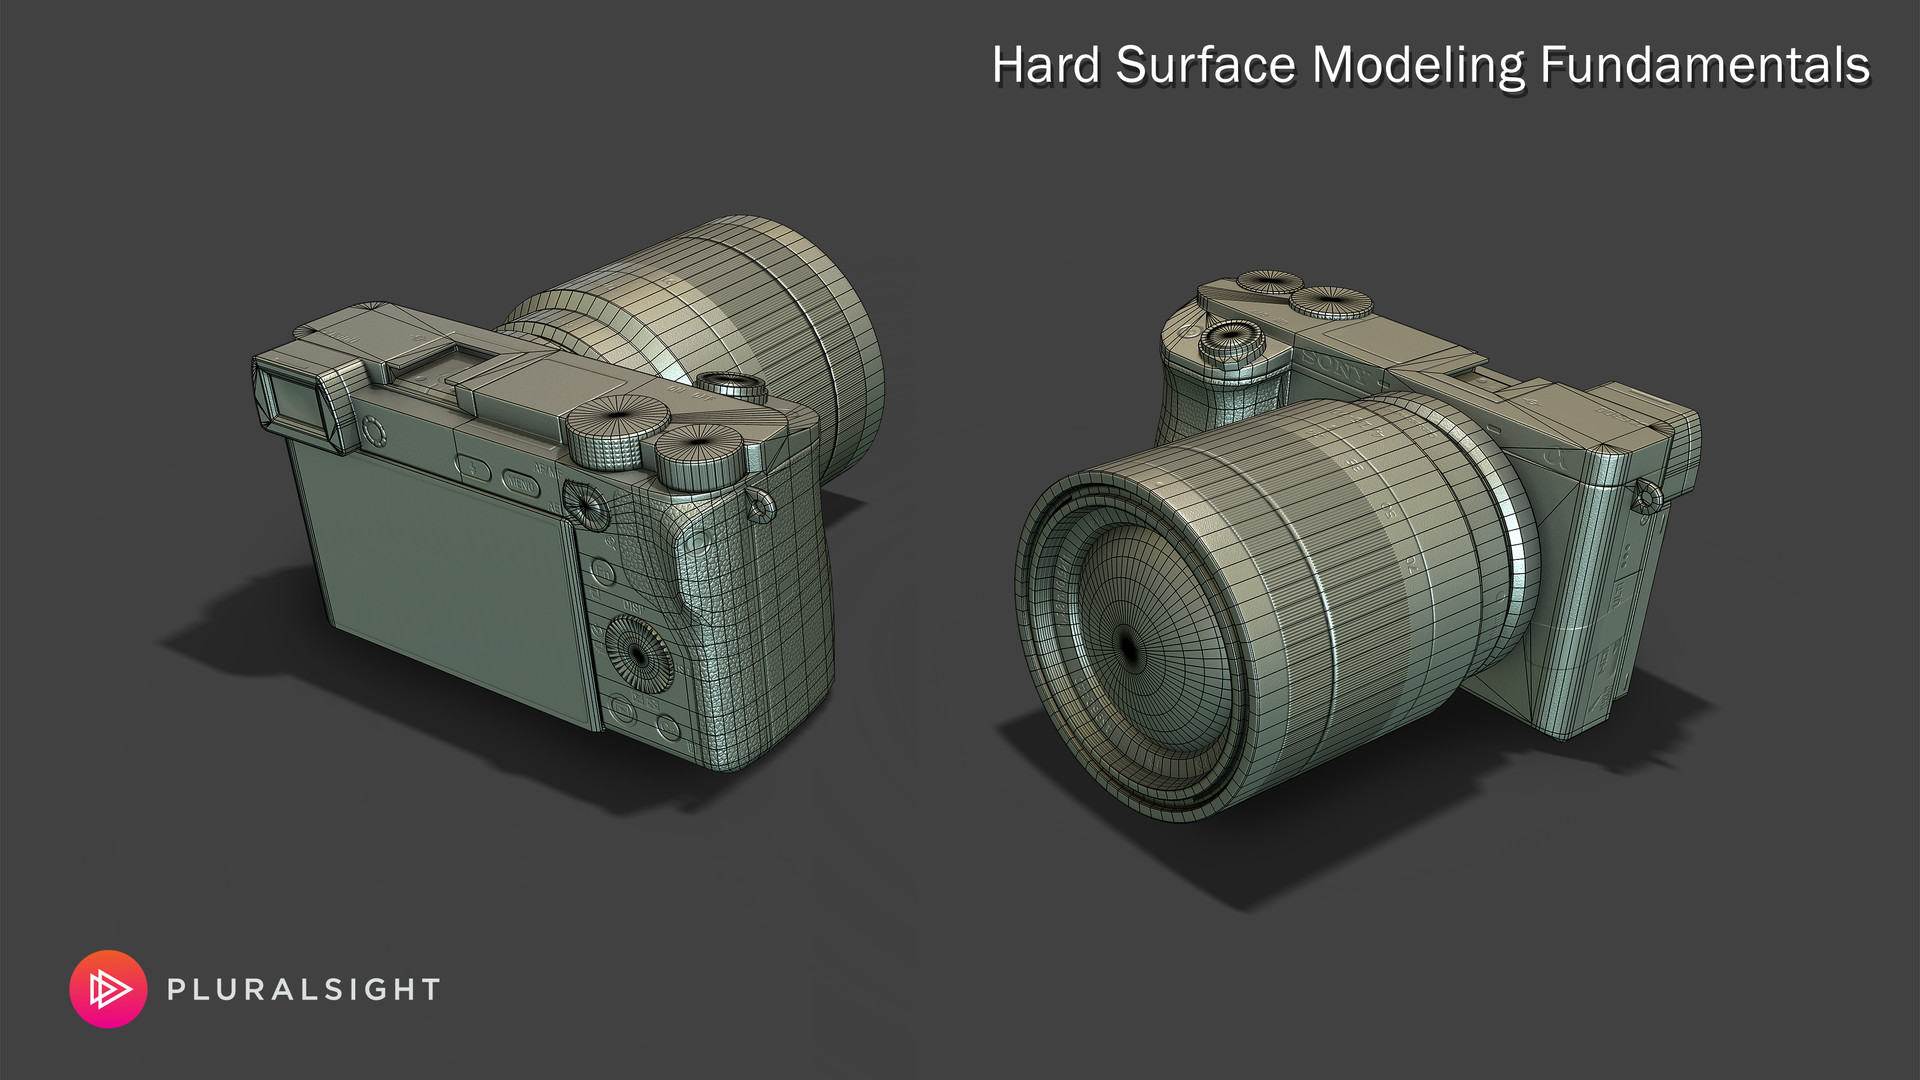 Artstation Hard Surfaice Moddeling Fundametals Pluralsight Alex Jerjomin